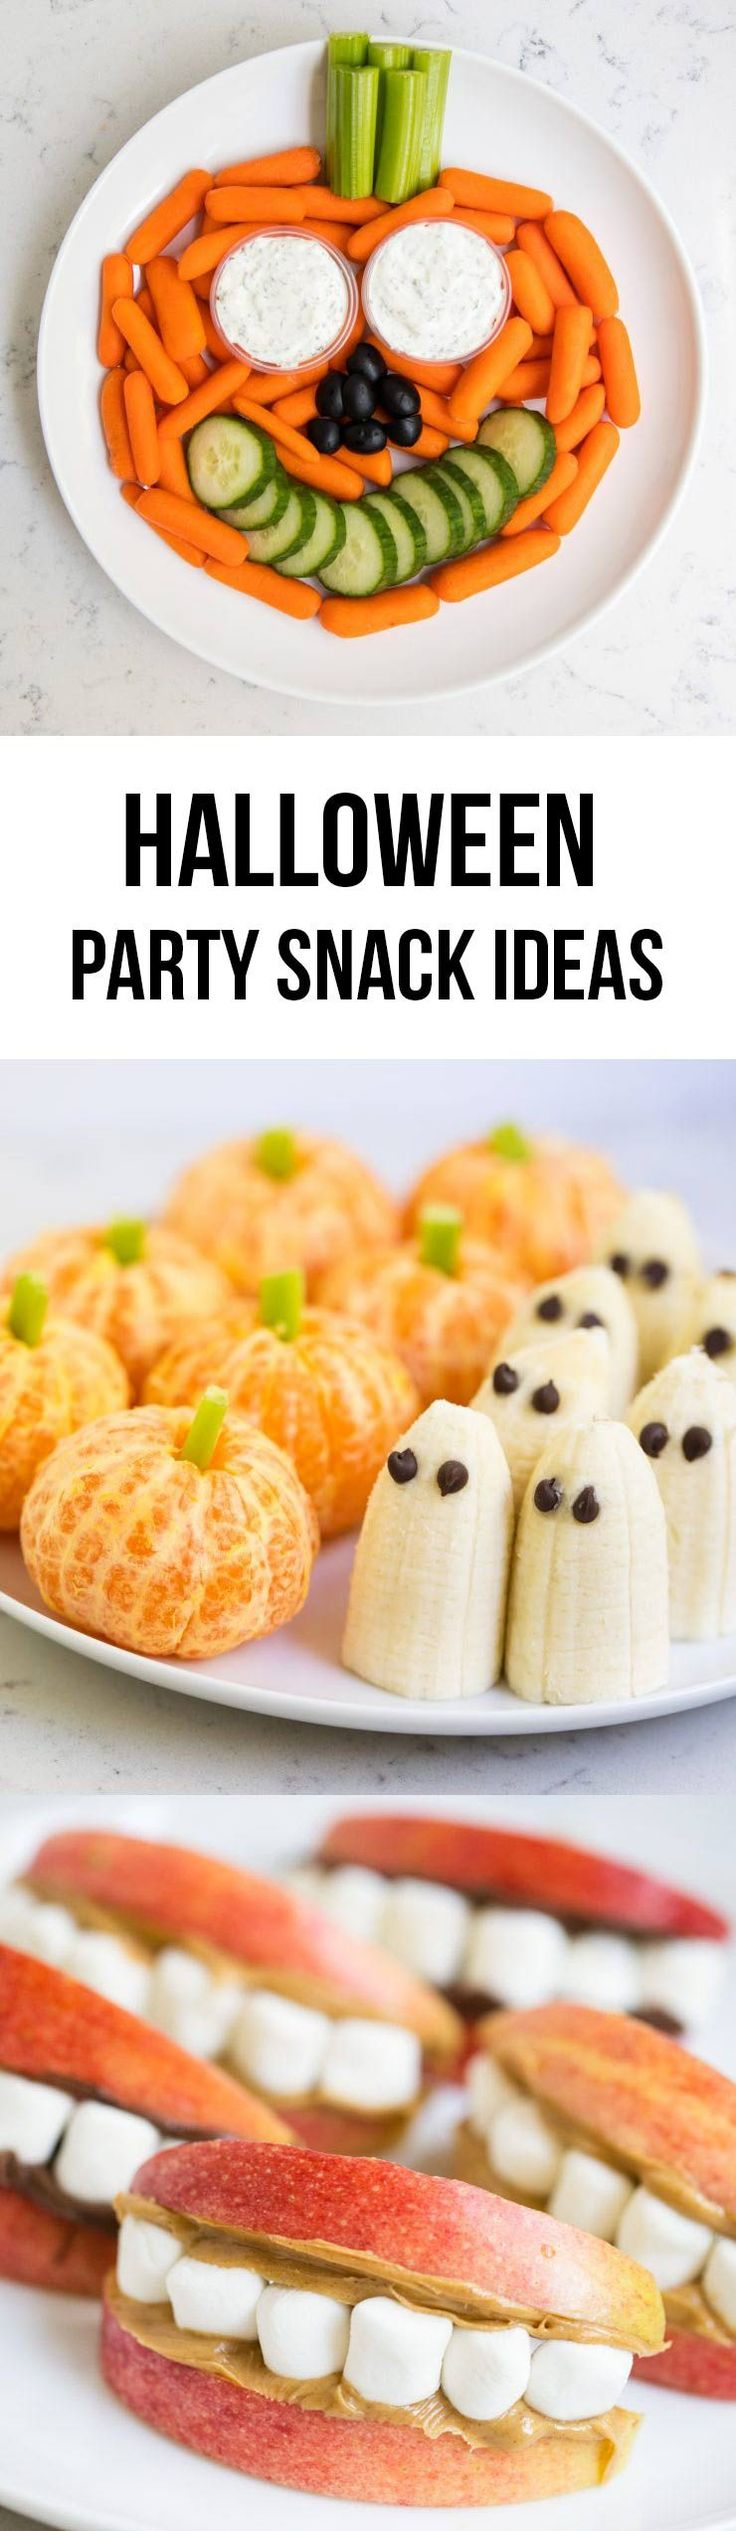 Snacks get spooky with these fun + festive recipes!